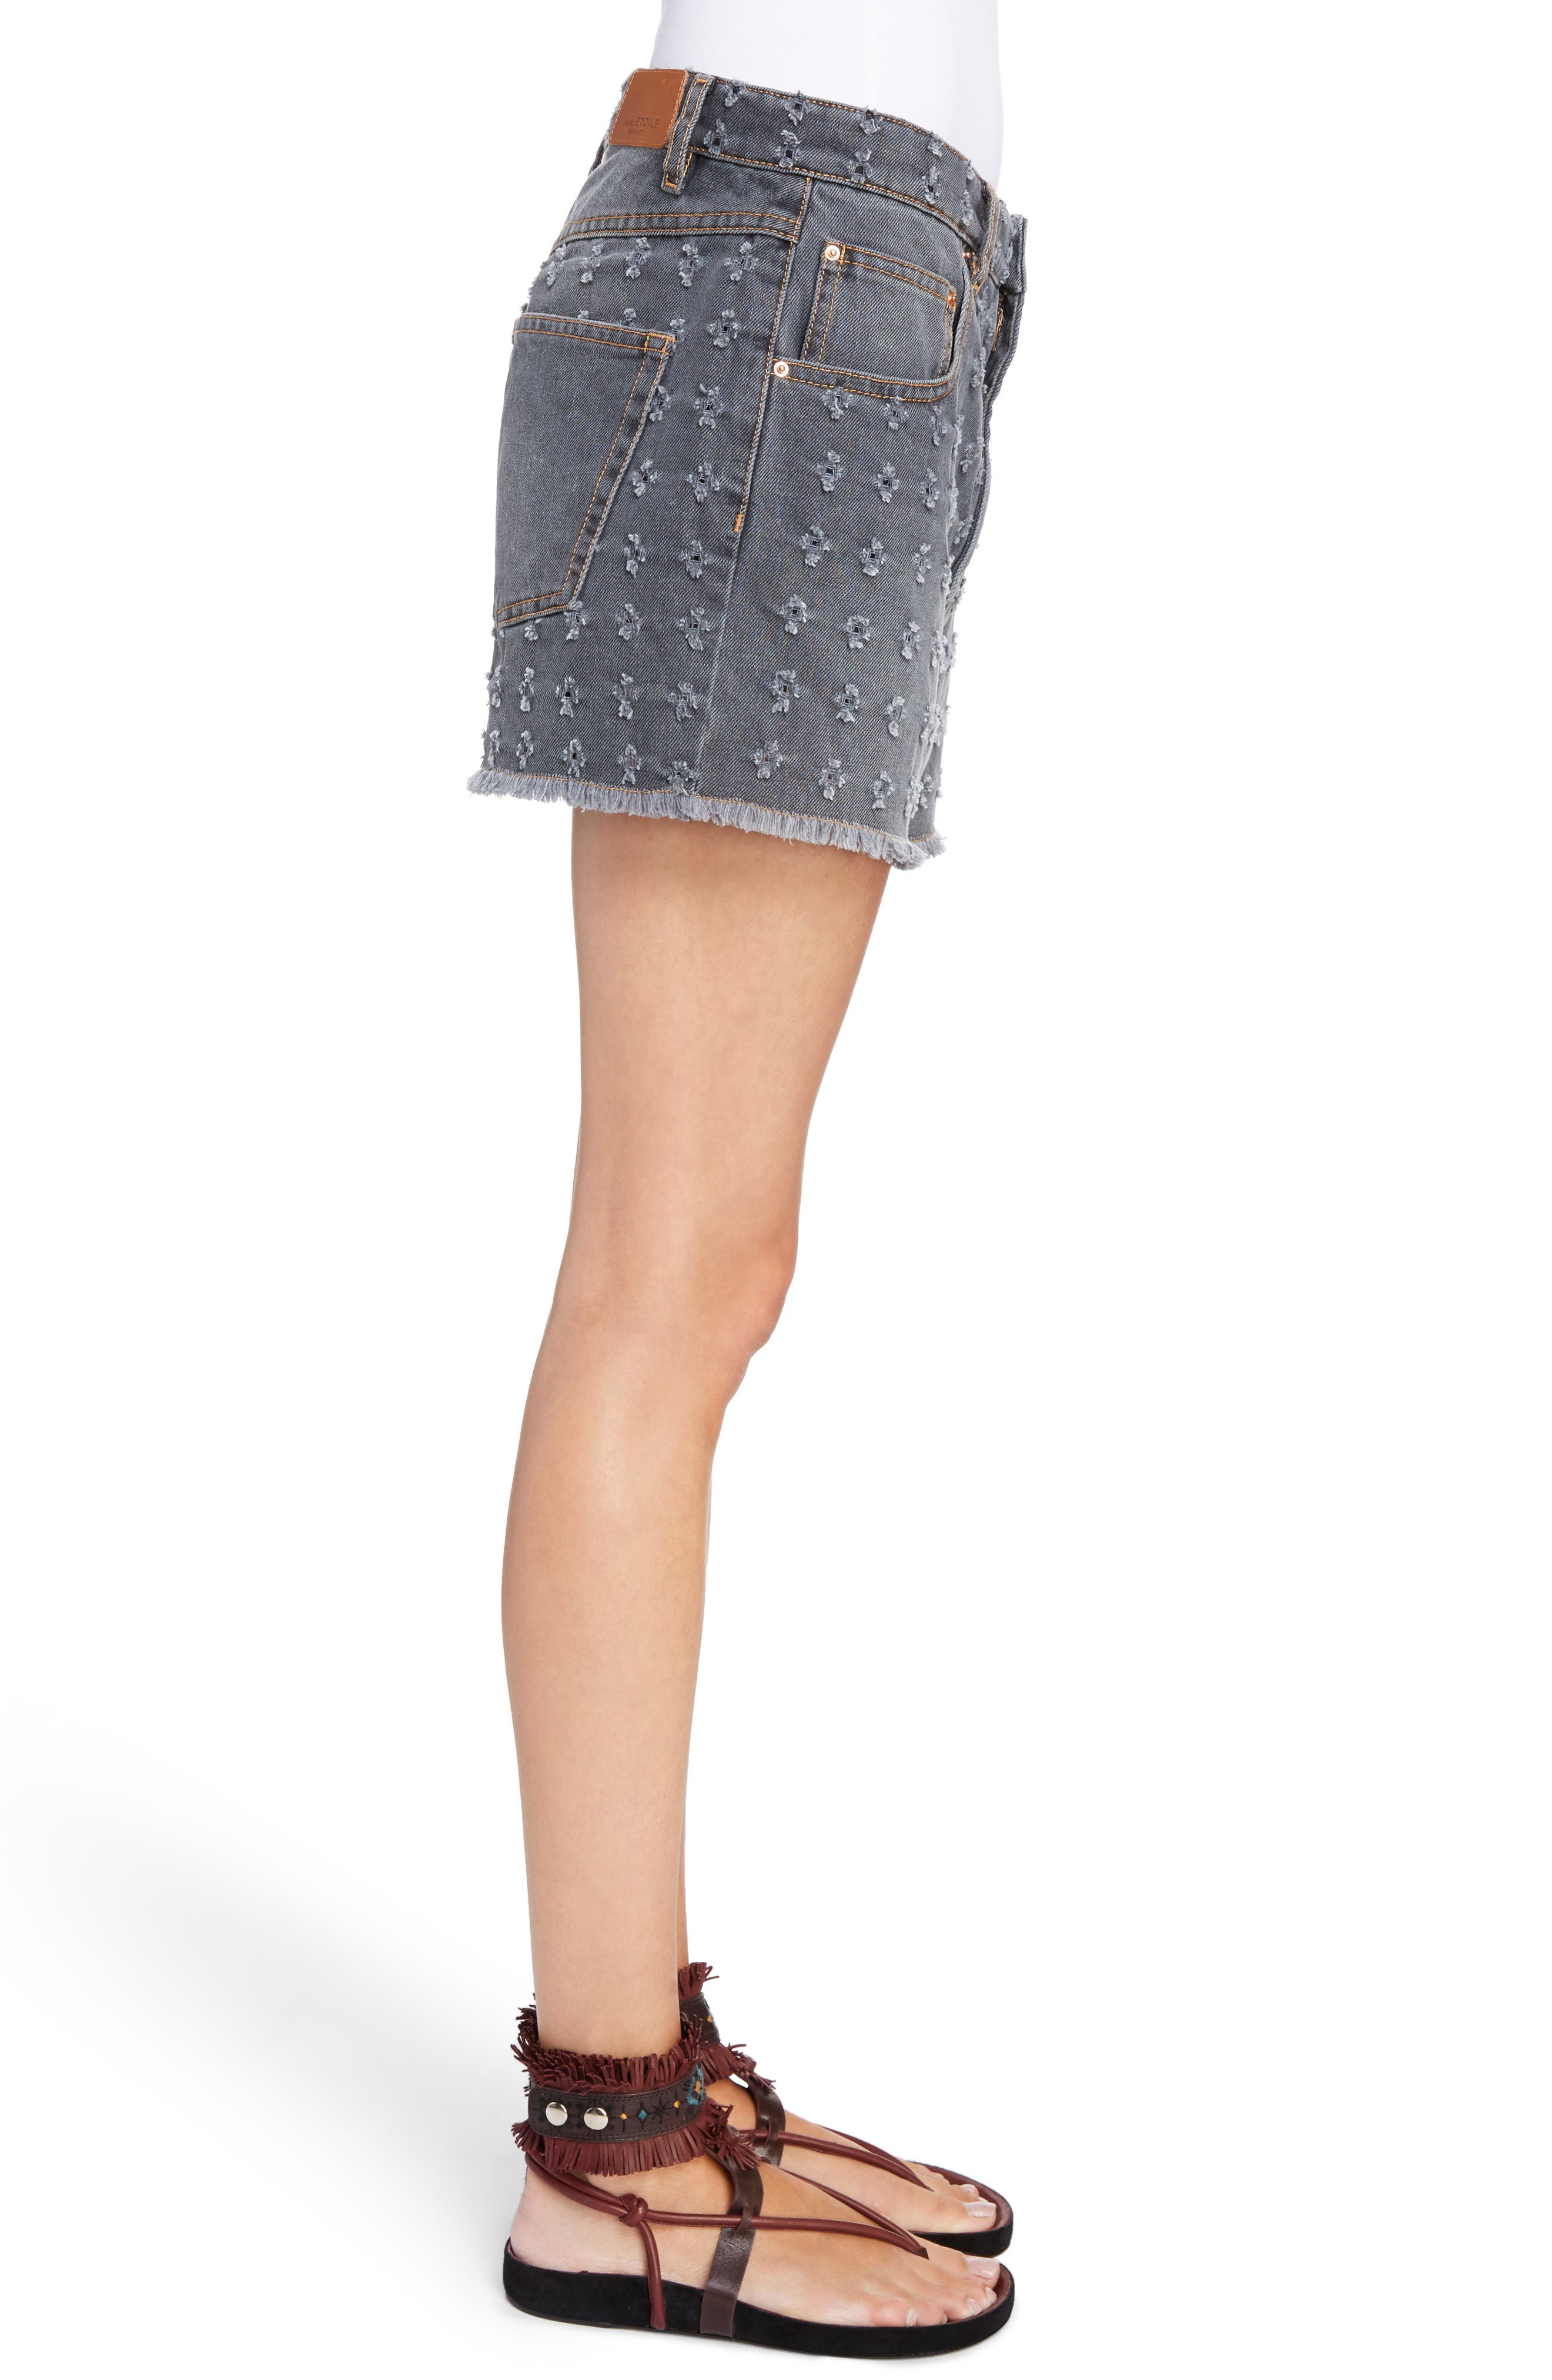 Isabel Marant Étoile Ripped Denim Shorts,                             Alternate thumbnail 5, color,                             Grey